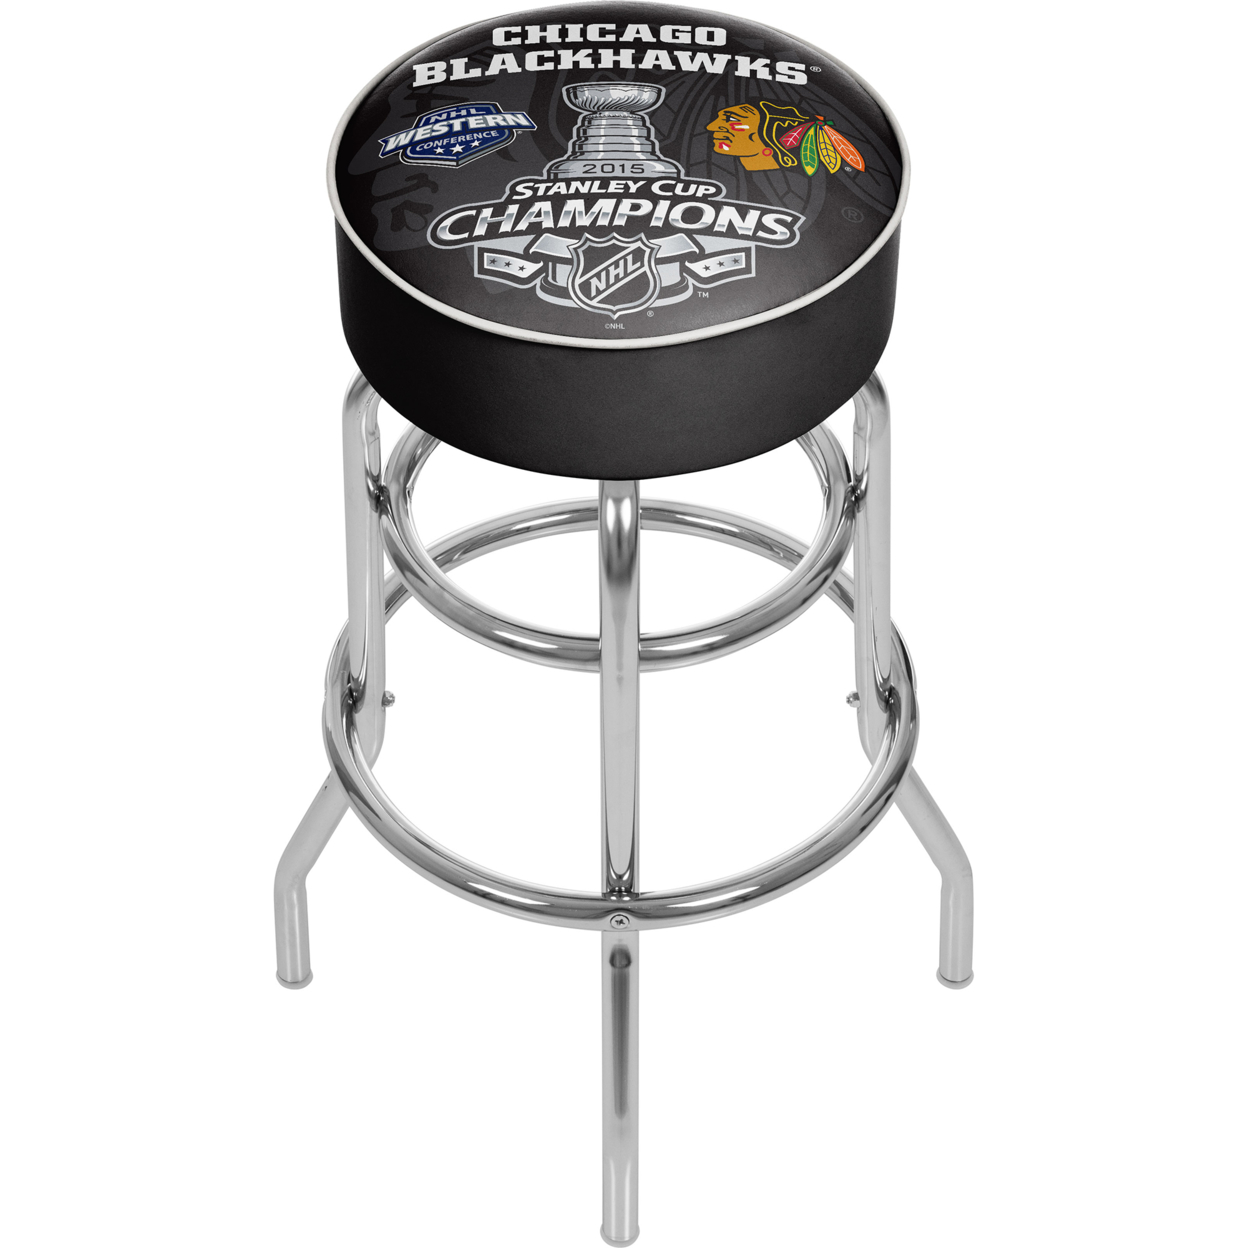 Chicago Blackhawks Swivel Bar Stool - 2015 Stanley Cup Champs chicago blackhawks 2013 nhl stanley cup champions souvenir hockey puck